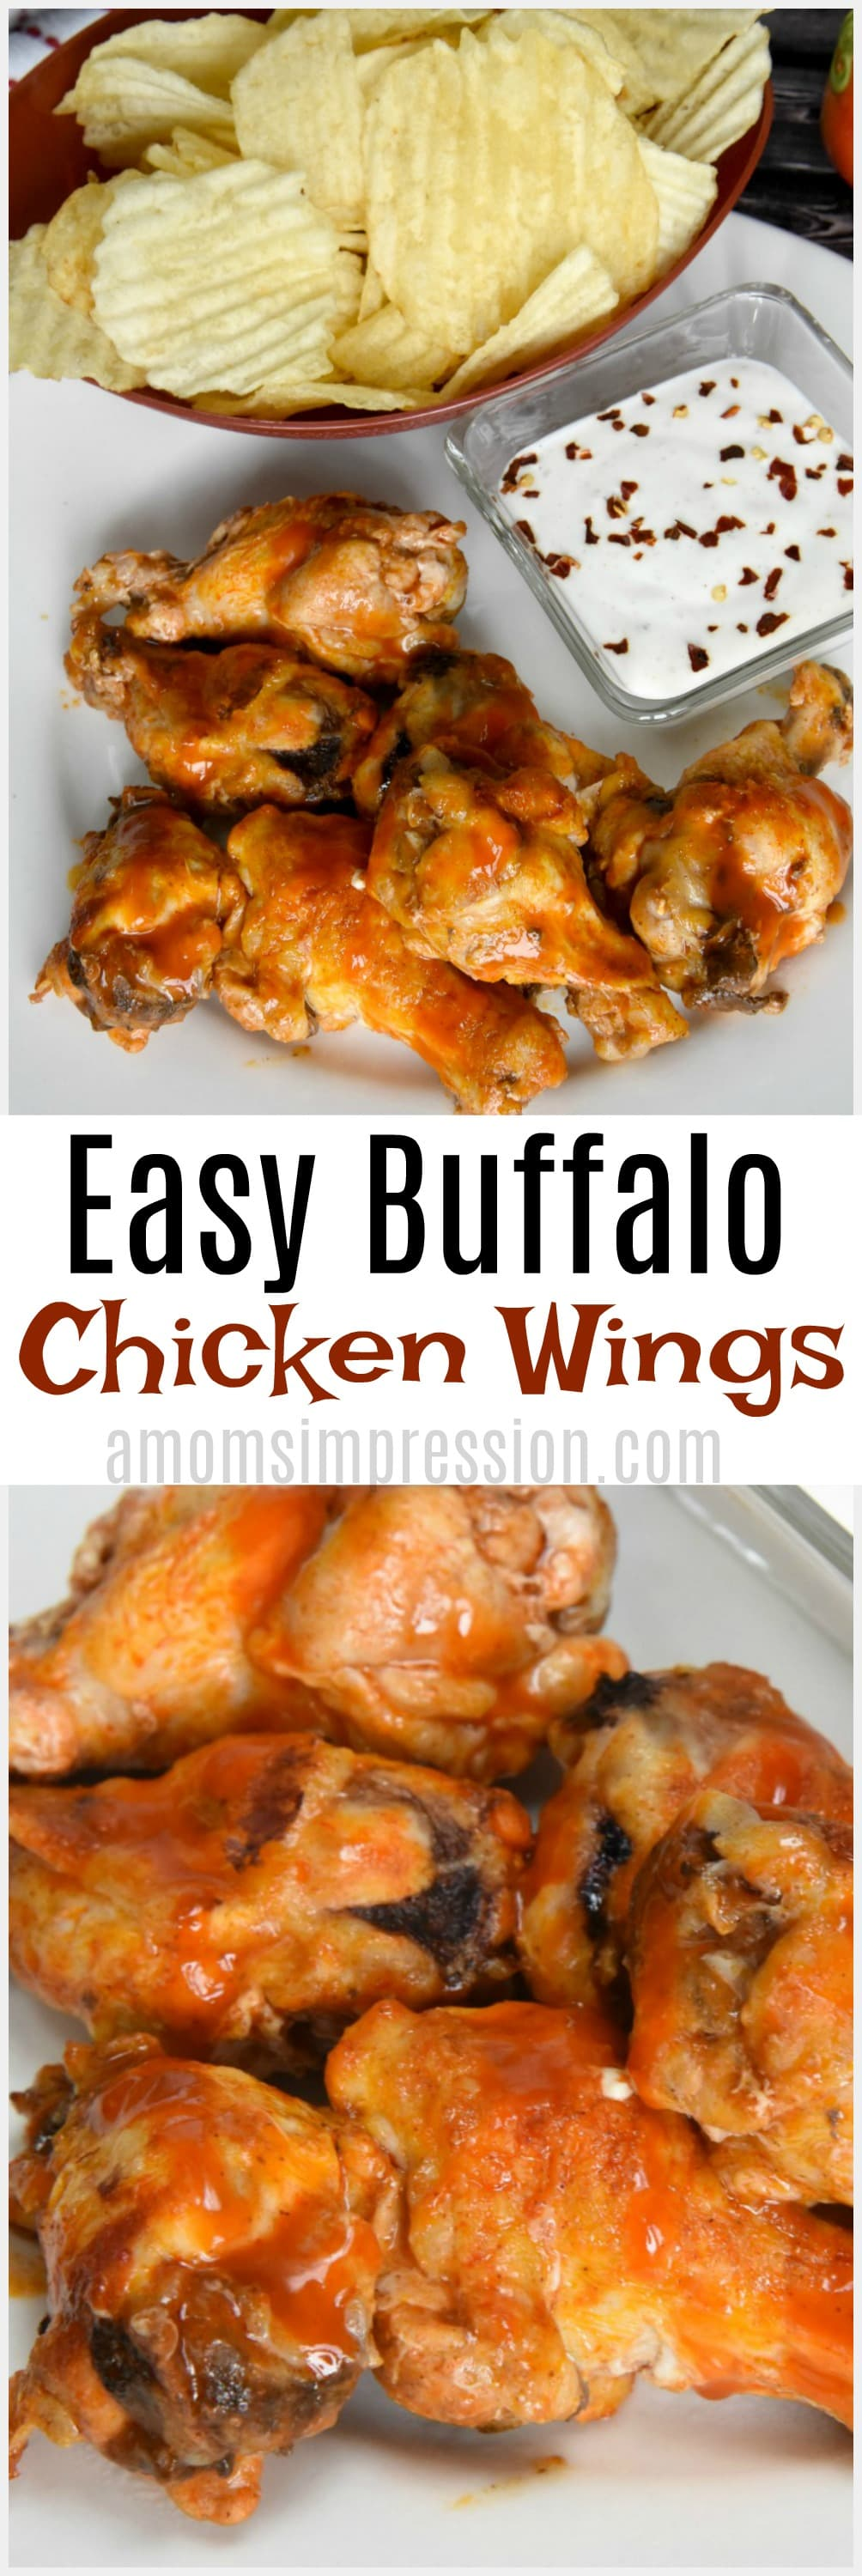 Make amazing buffalo chicken wings in the oven with this easy recipe. Included is a baked method and a grill method. Simple yet delicious!